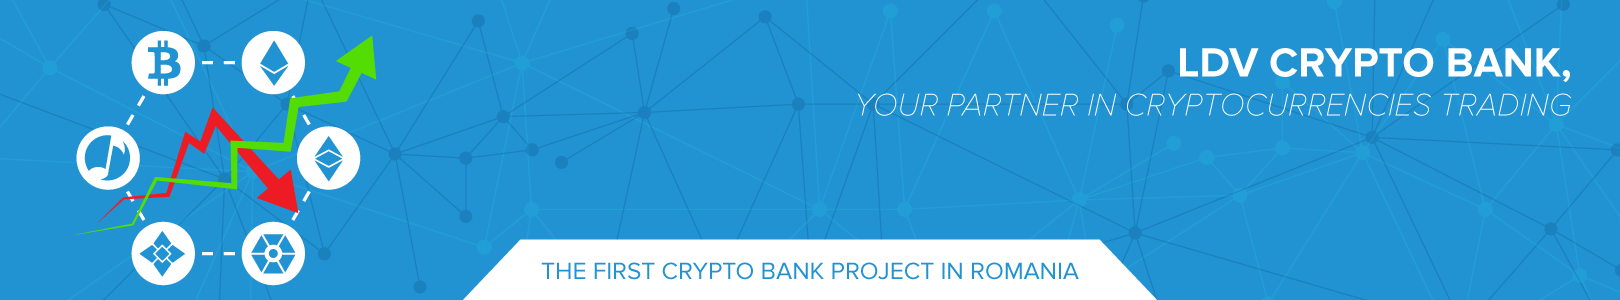 LDV CRYPTO BANK, The first crypto bank project in Romania